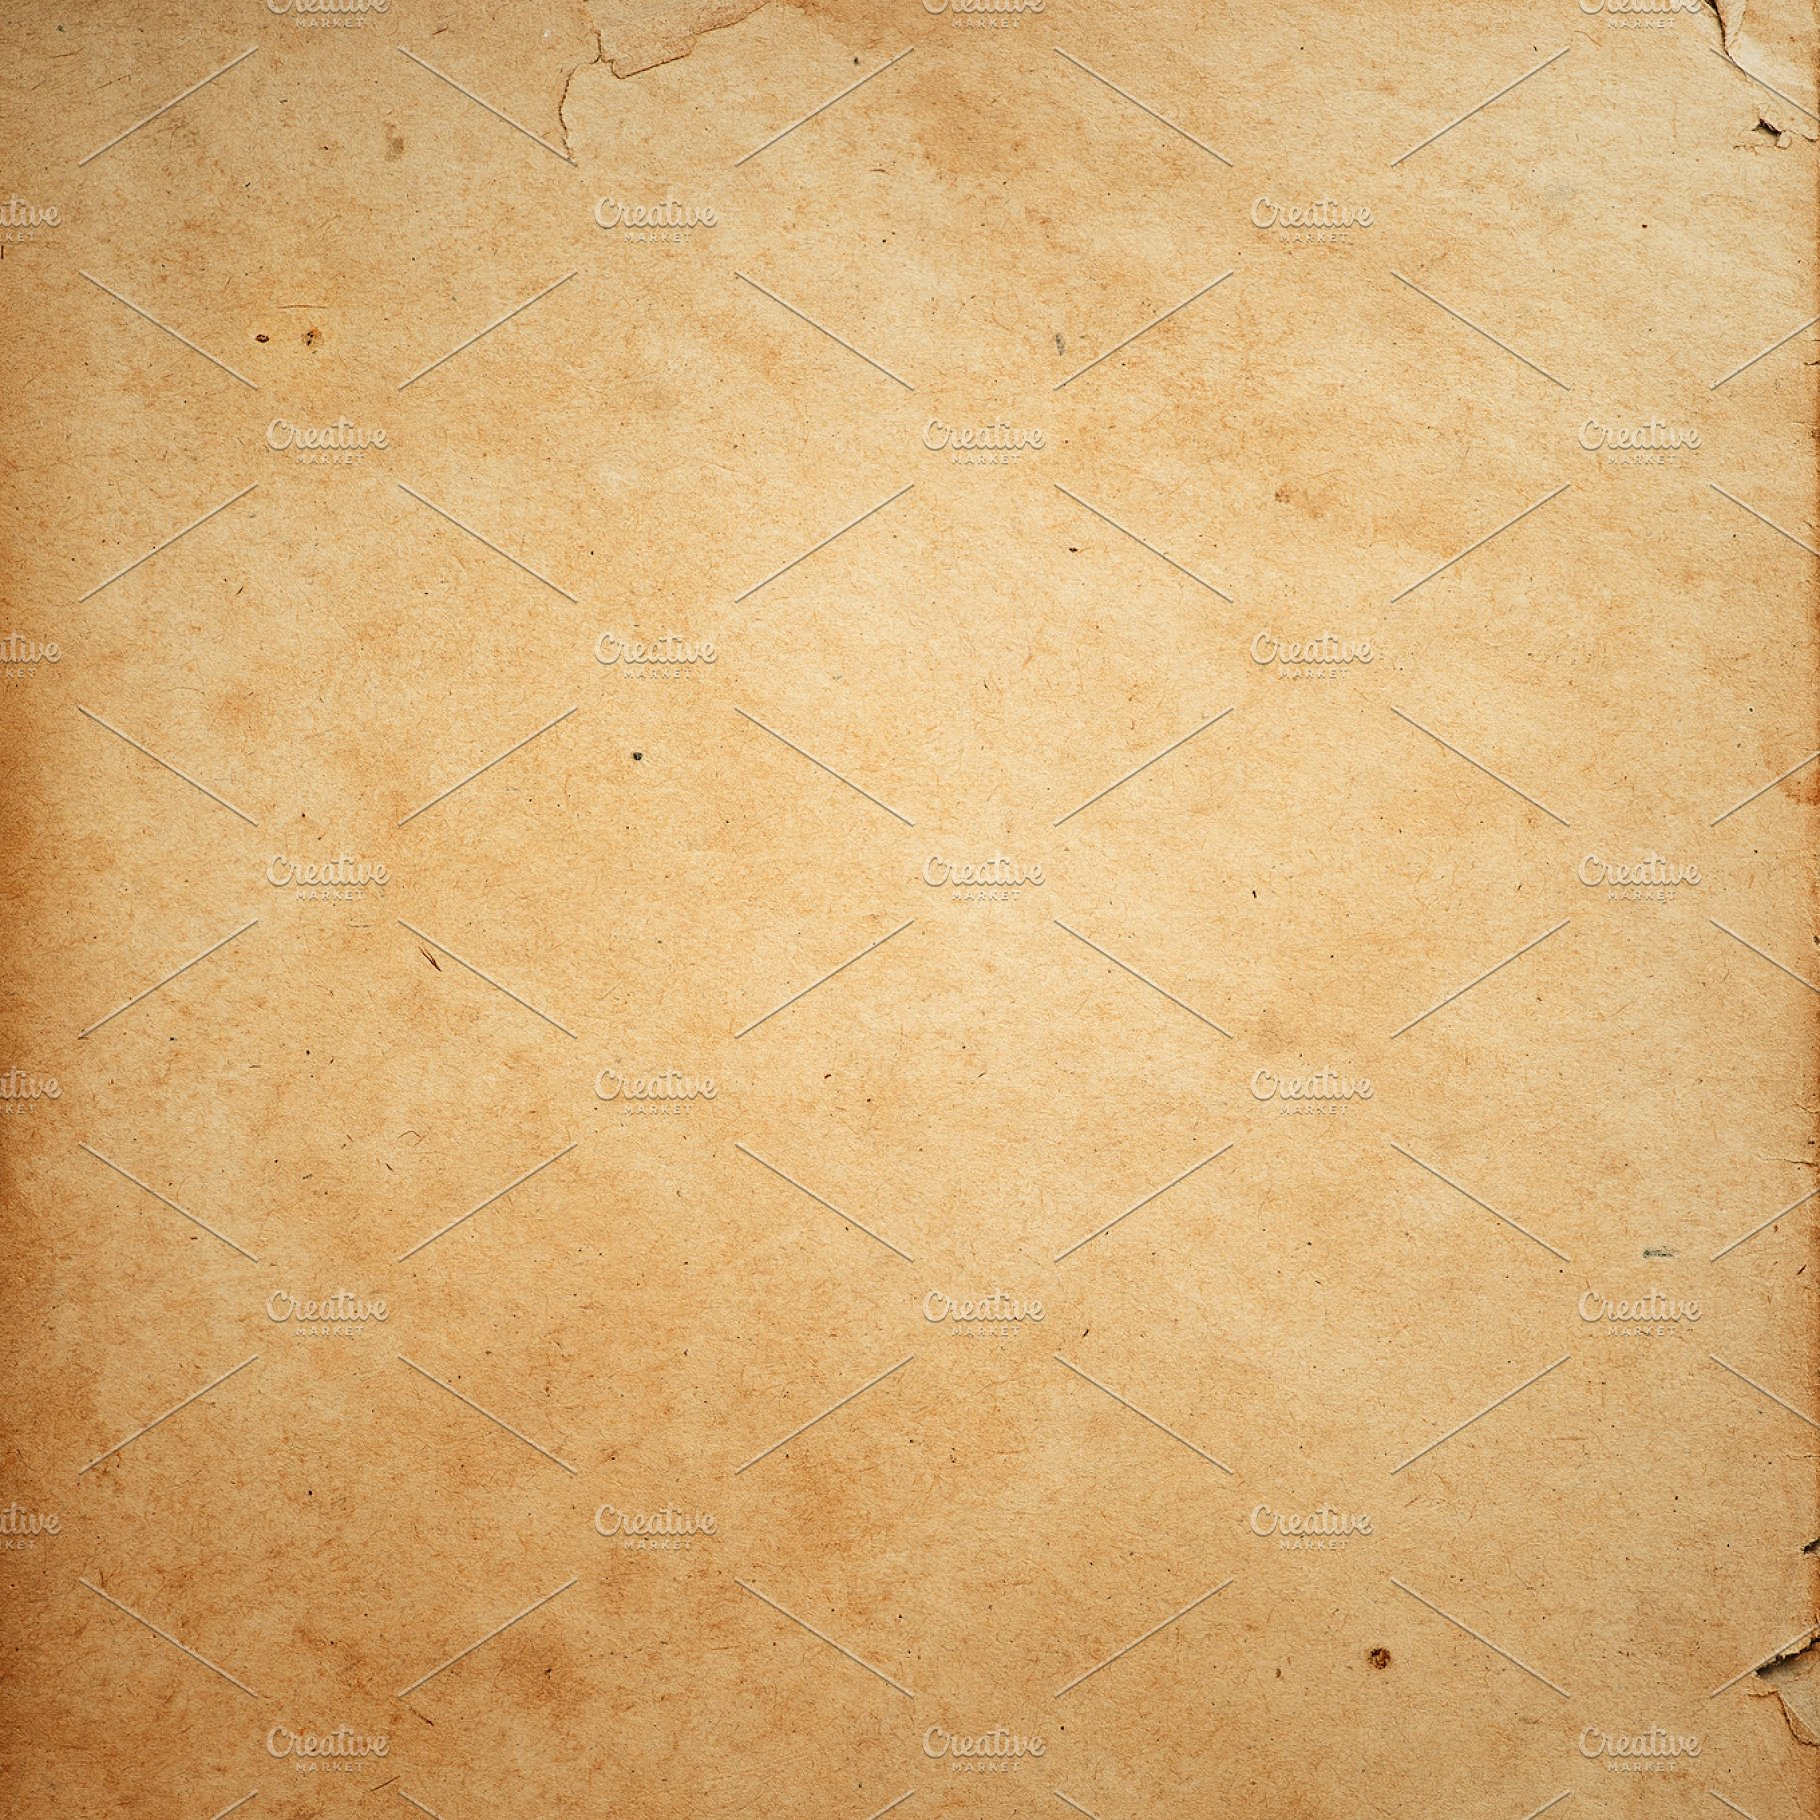 Grunge vintage old paper | High-Quality Abstract Stock Photos ...